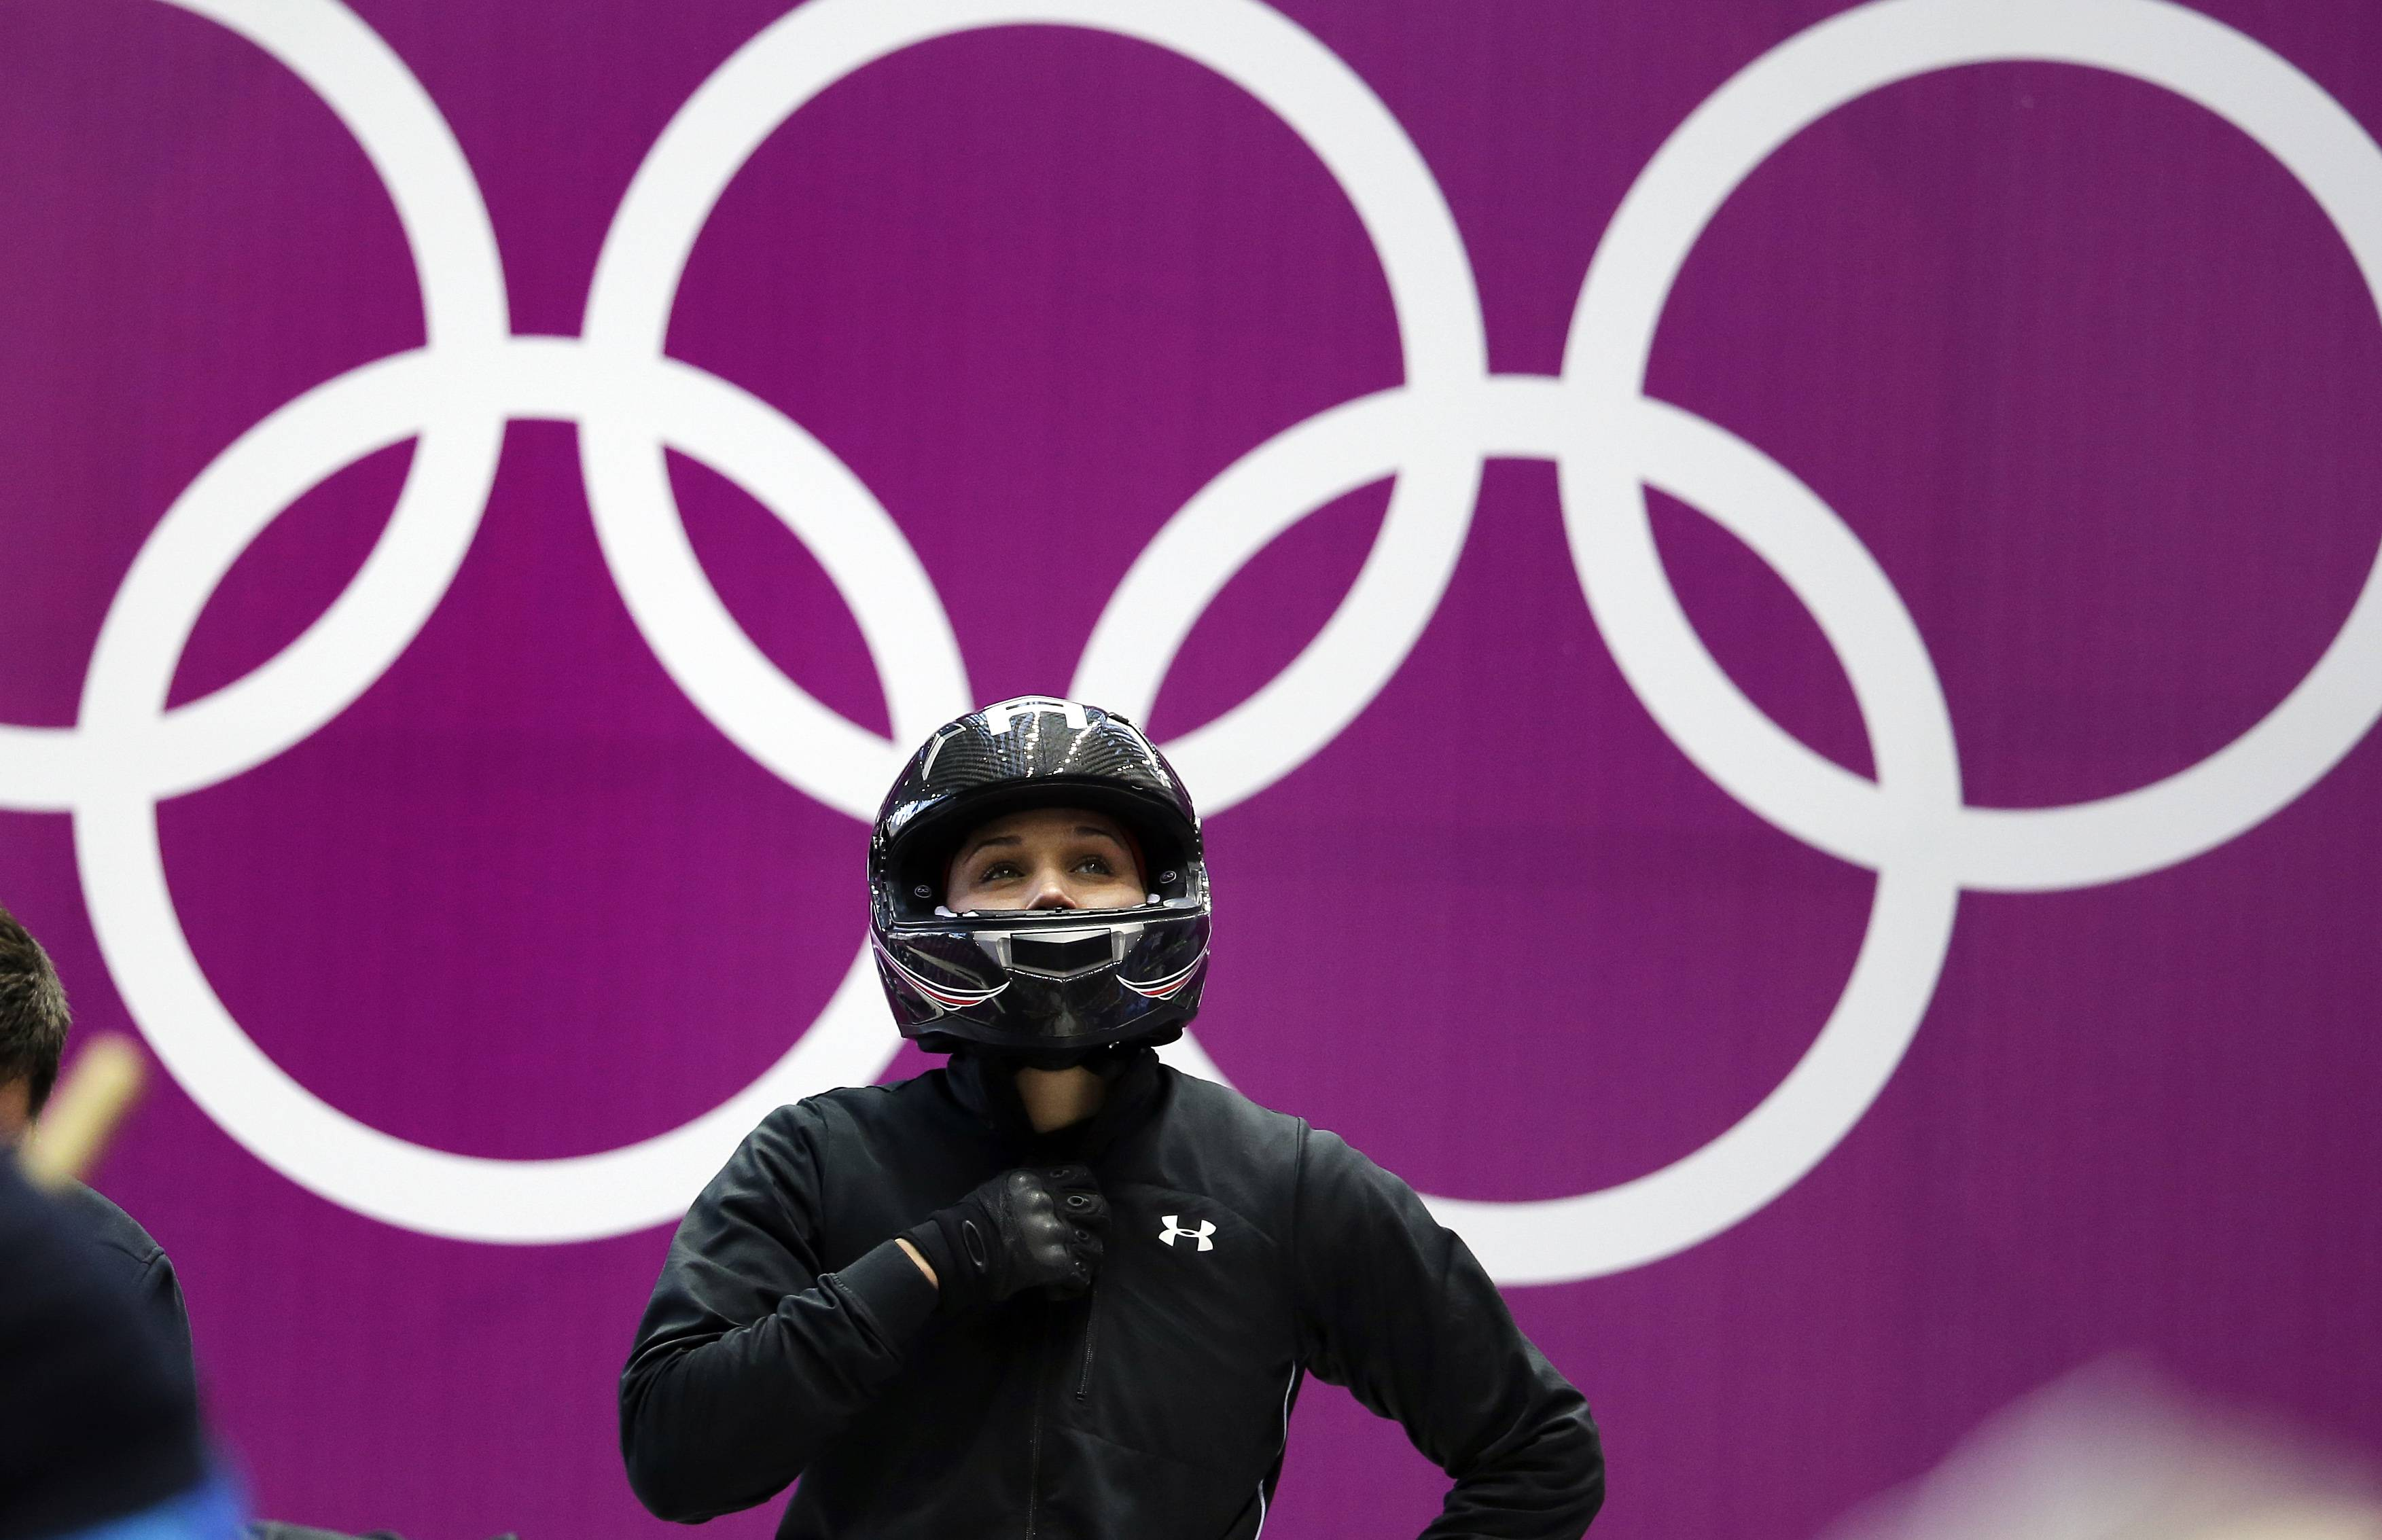 Lolo Jones prepares for a heat race Friday during the women's bobsled competition at the 2014 Winter Olympics in Krasnaya Polyana, Russia.